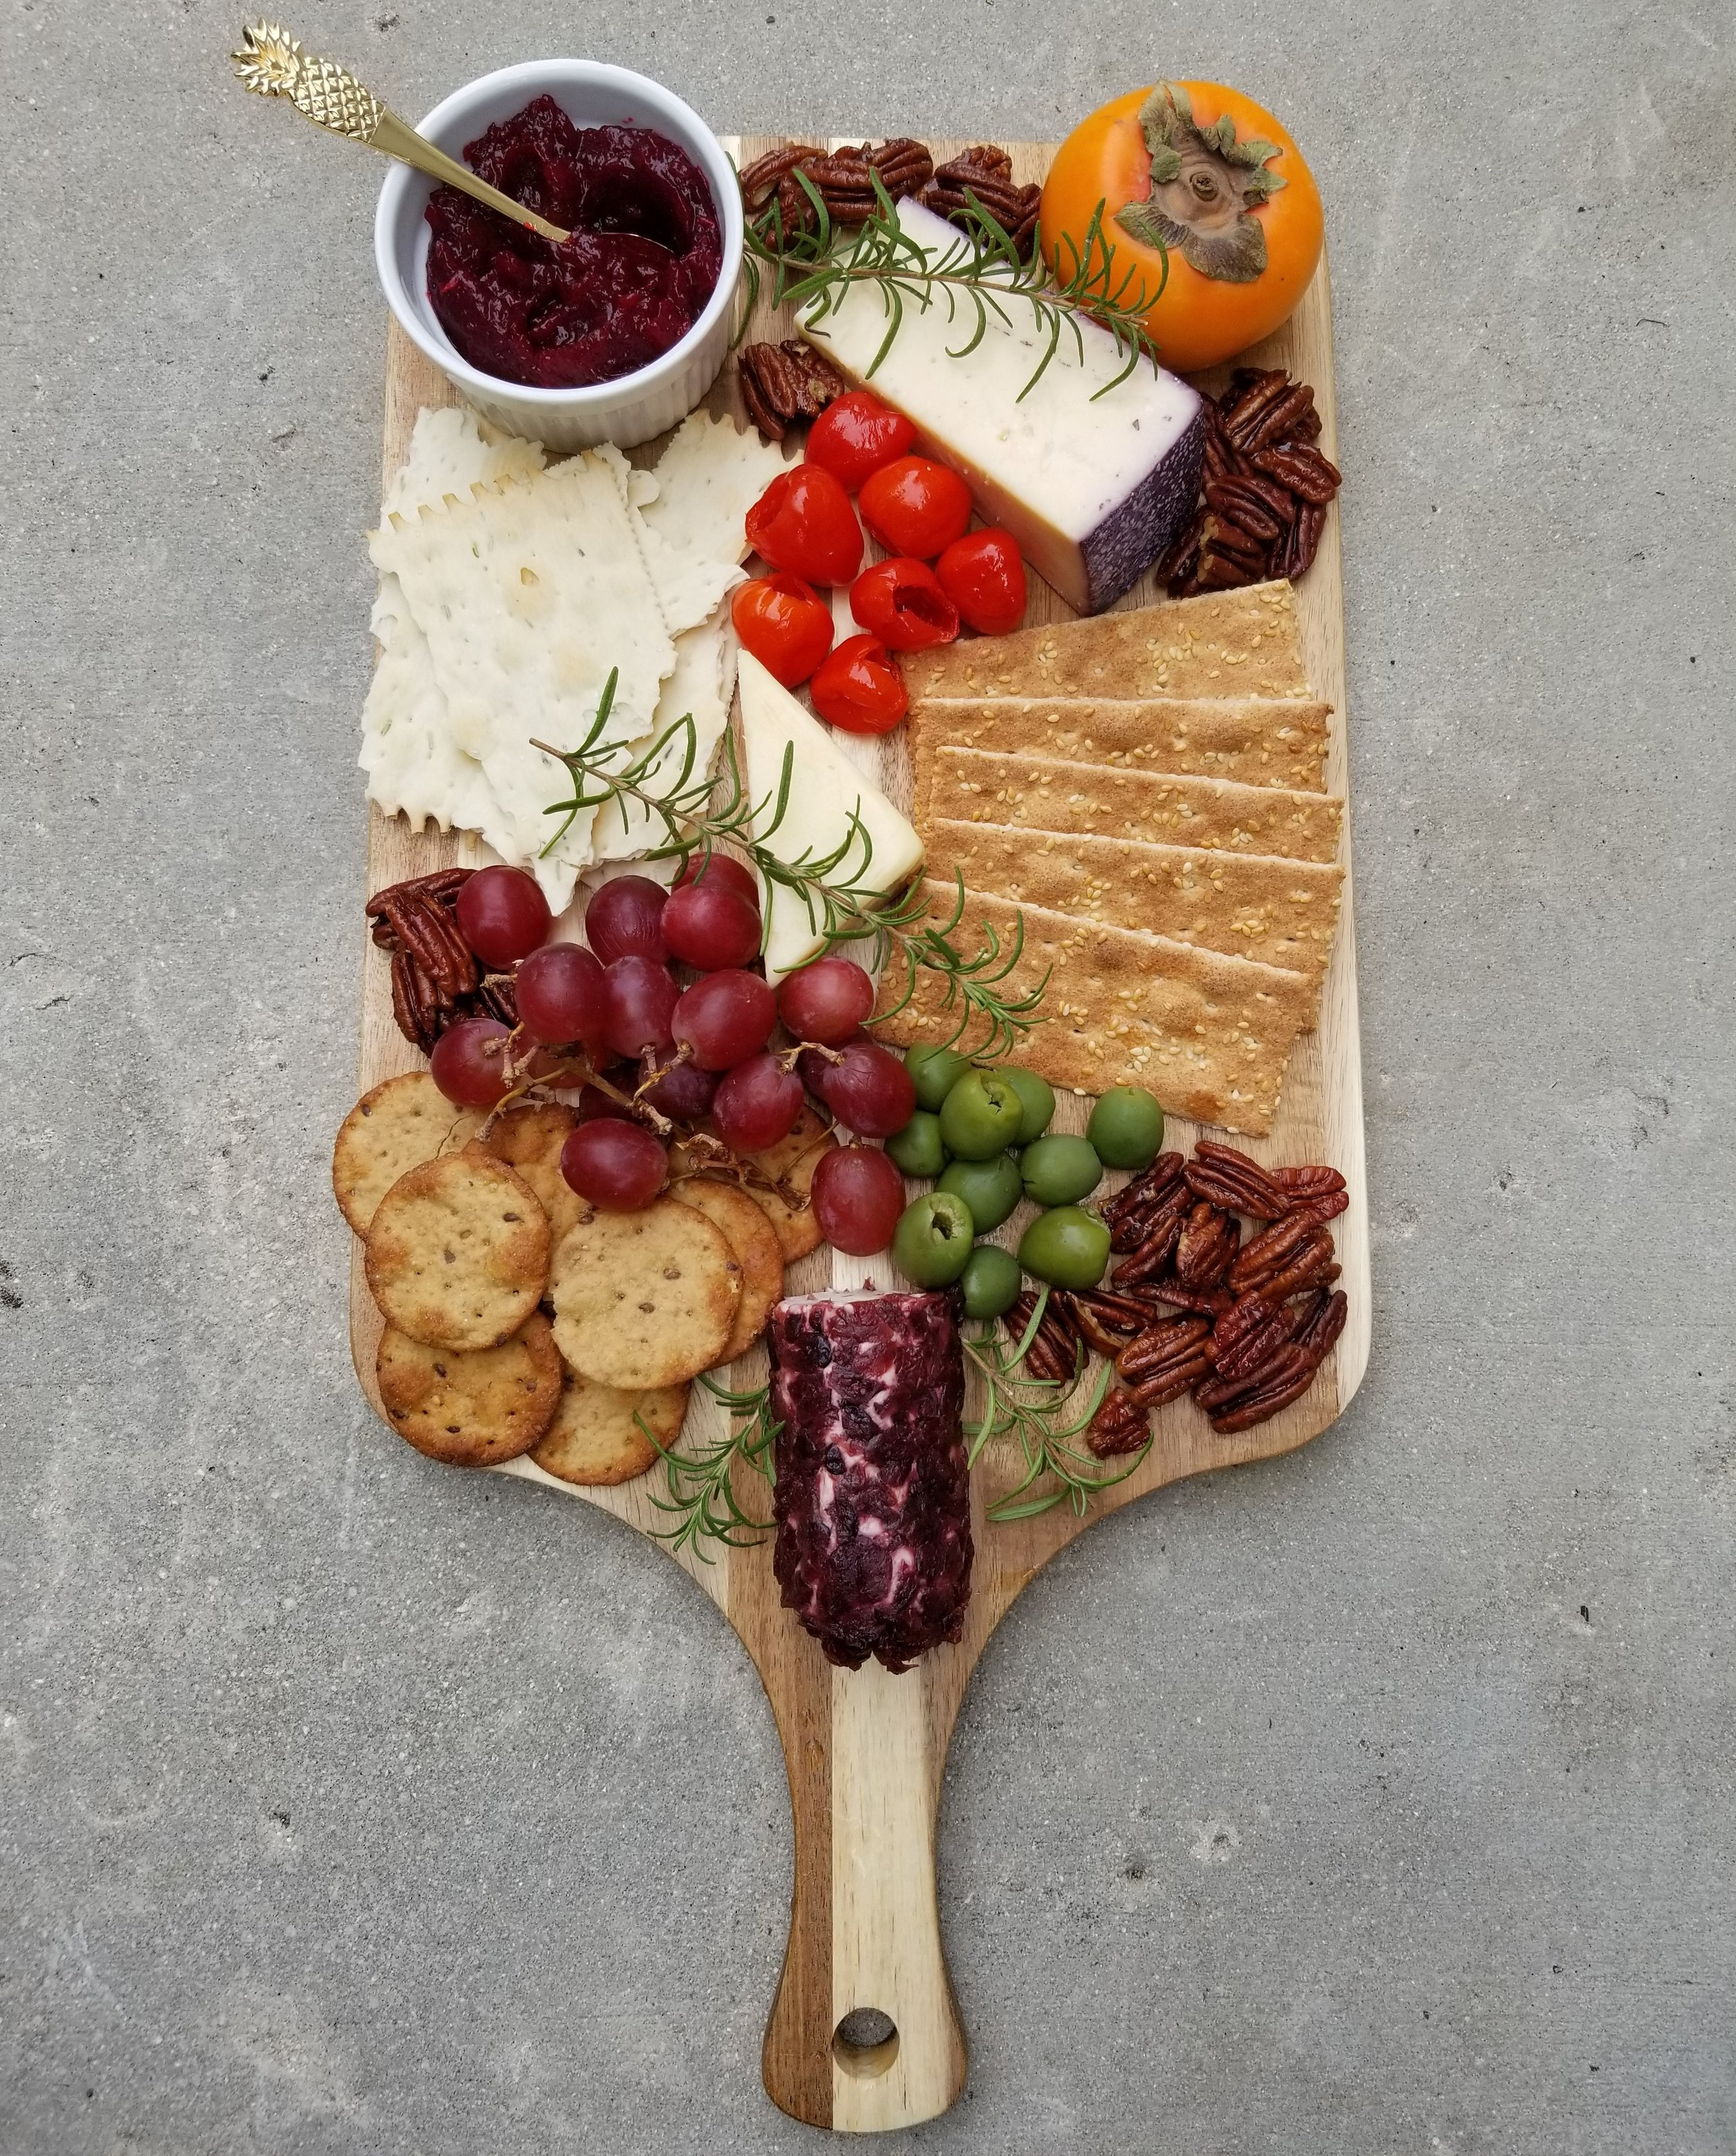 The most   epic   cheese board I've ever created - it's only my 2nd one, but there's more to come when they look this good!